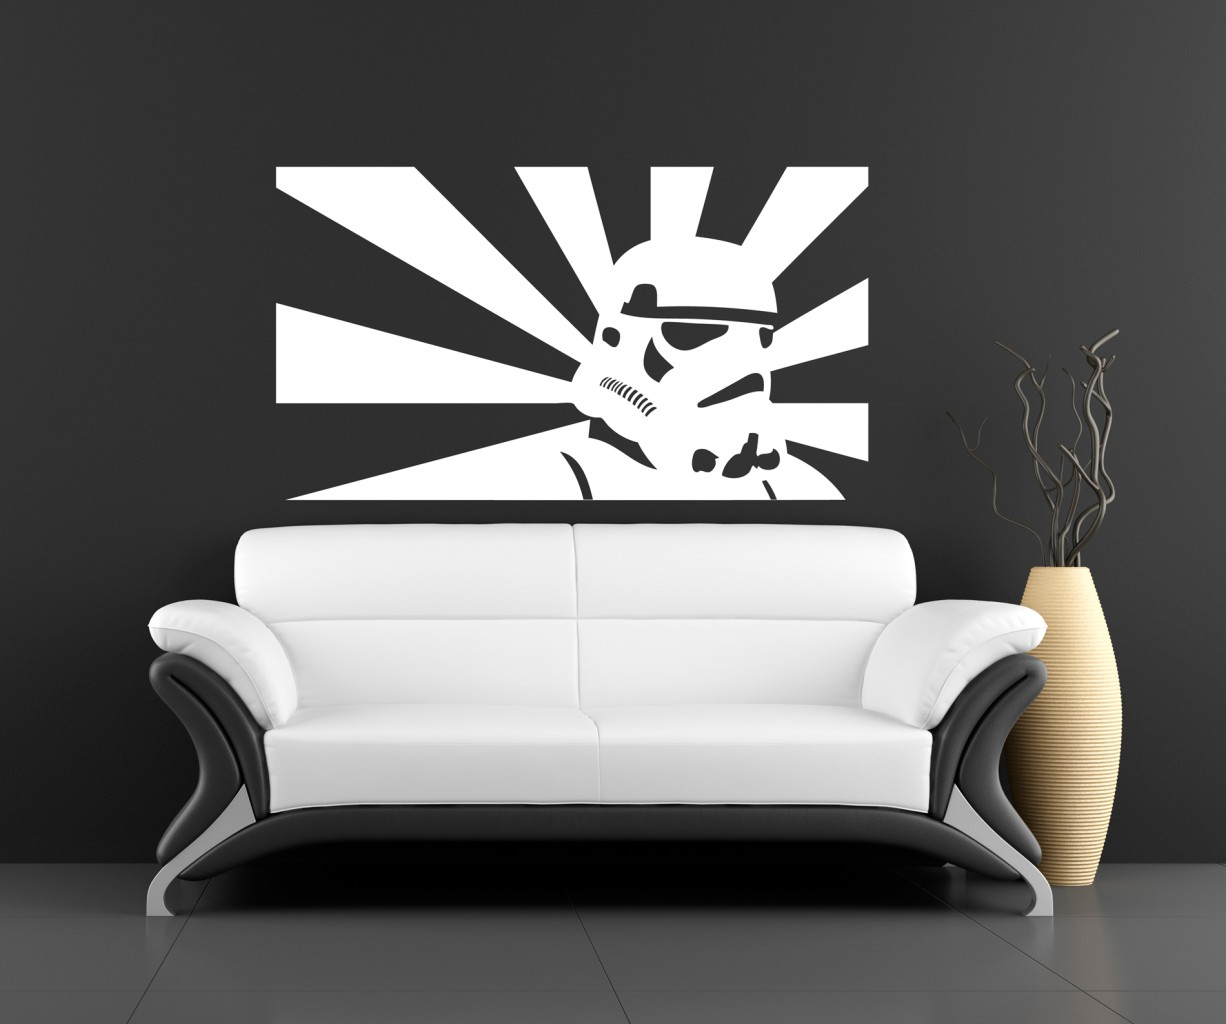 Star Wars Room Design Ideas